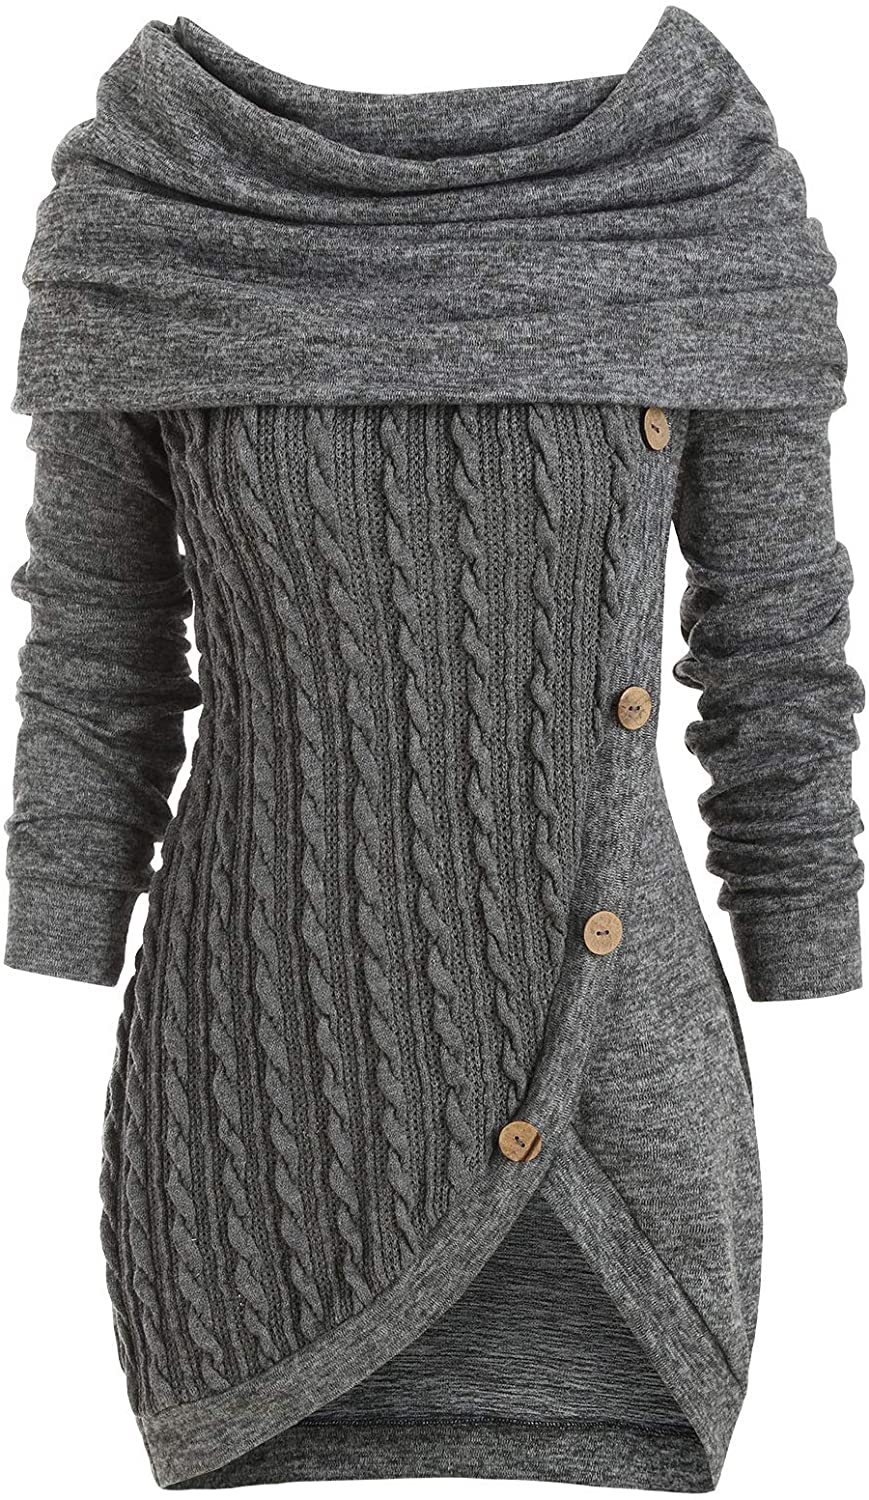 Women's Hooded Cowl Neck Long Sleeve Button Pullover